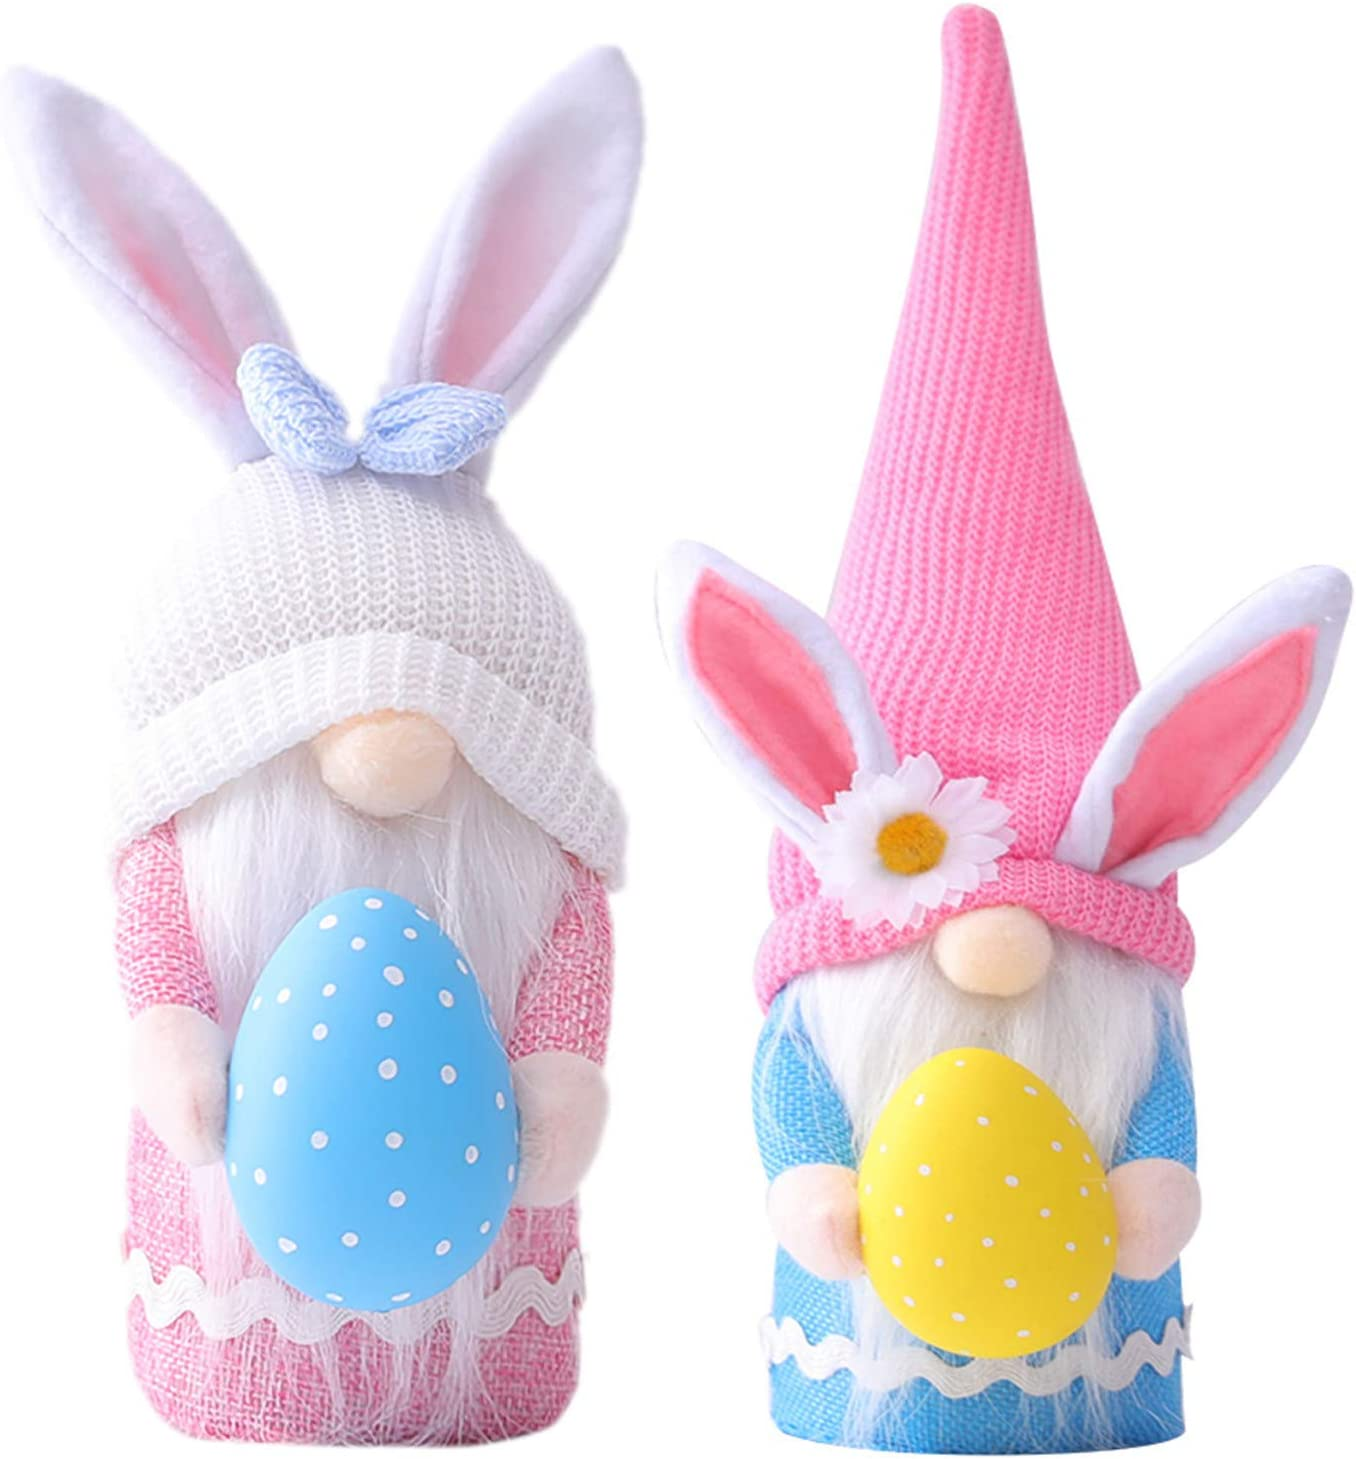 Bunny Gnomes 2 Packs Rabbit Tomte shipfree Girls Gift for Birthday Max 40% OFF Nordic